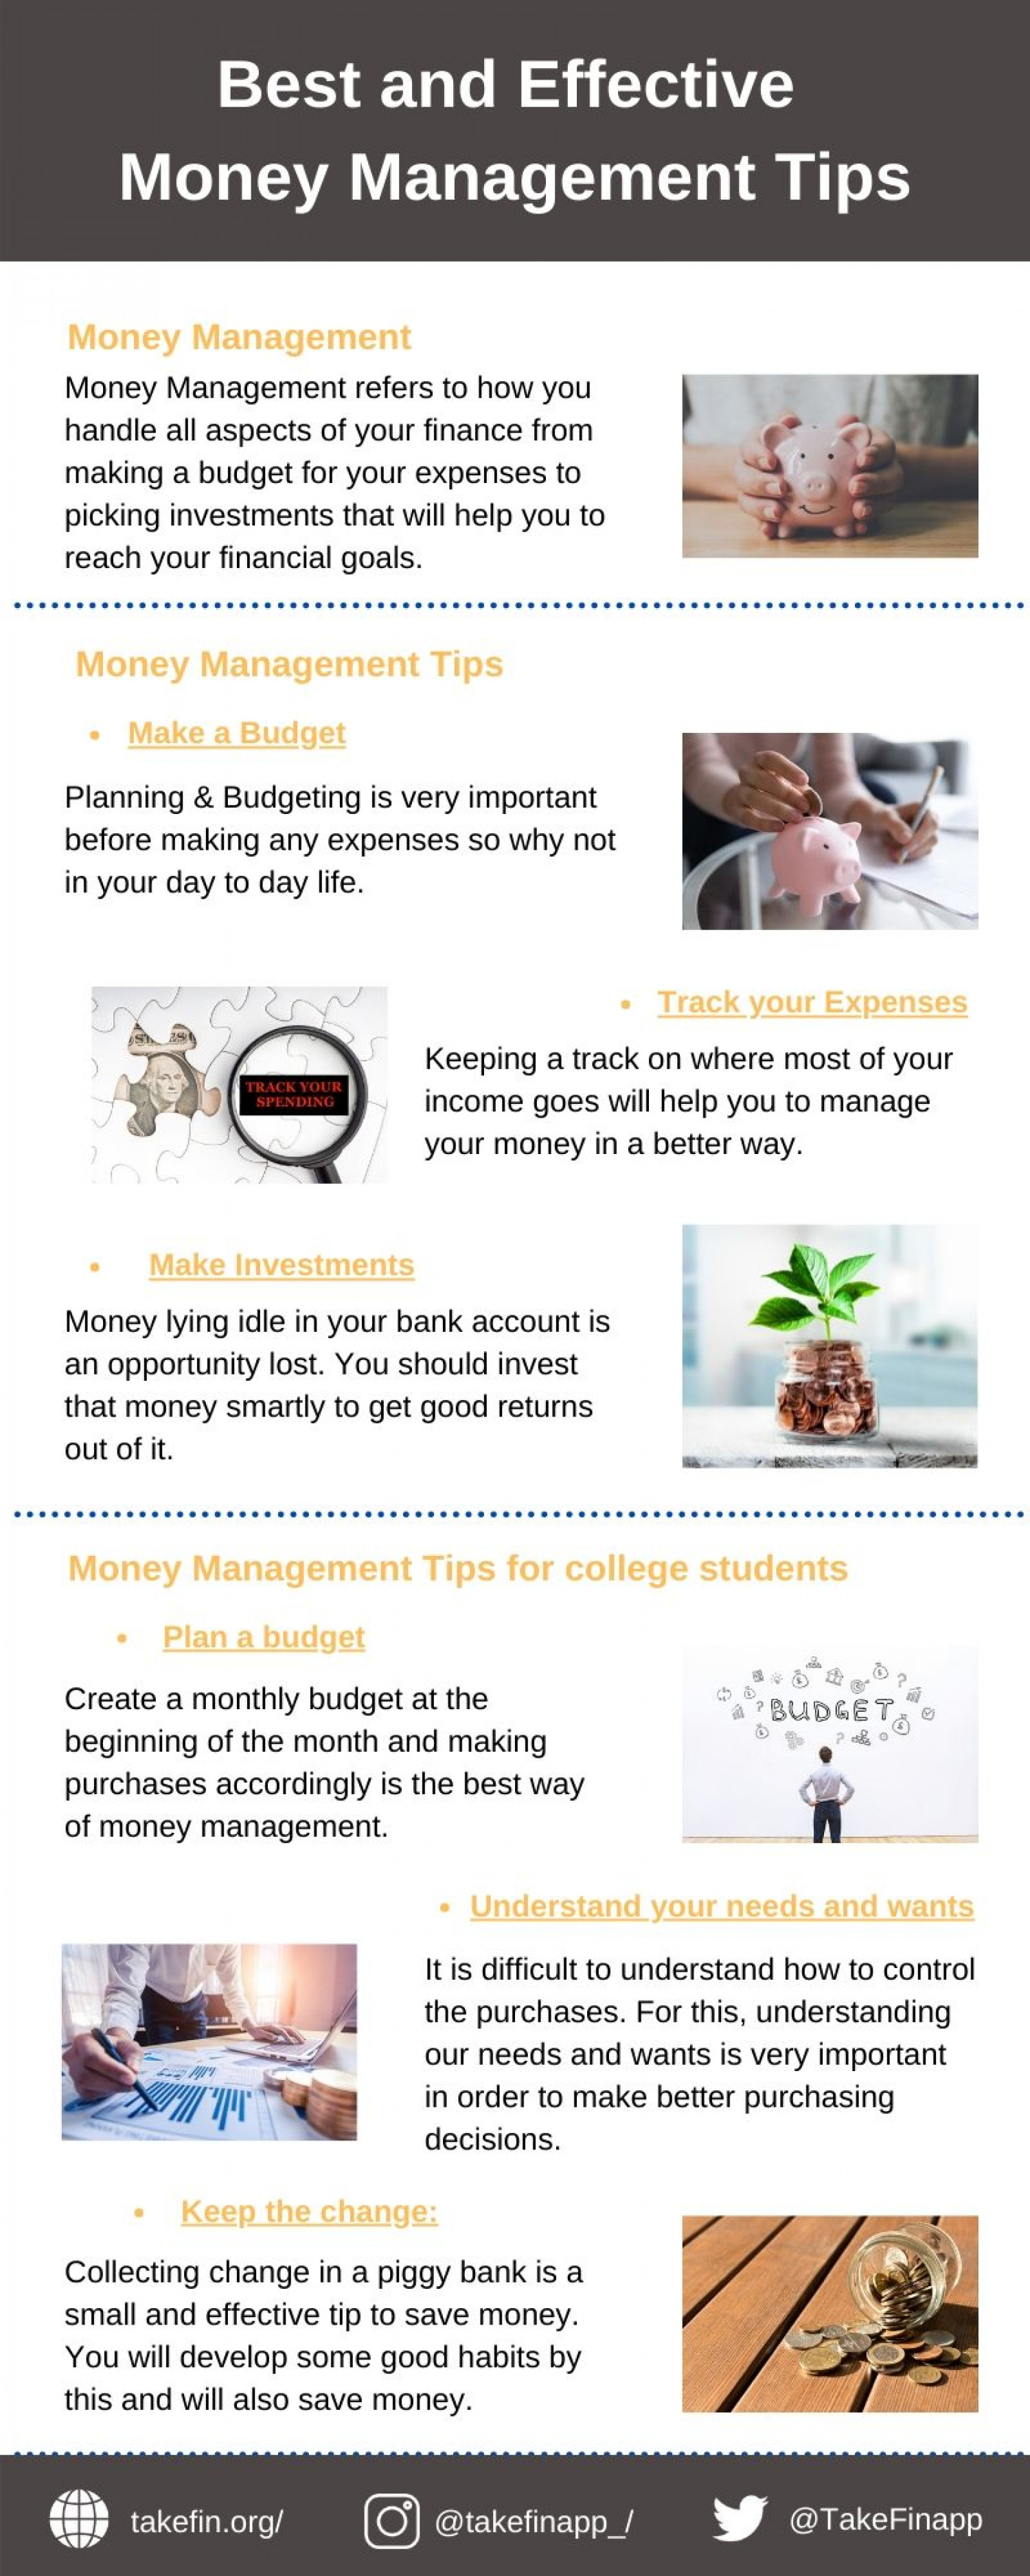 Best and Effective Money Management Tips Infographic